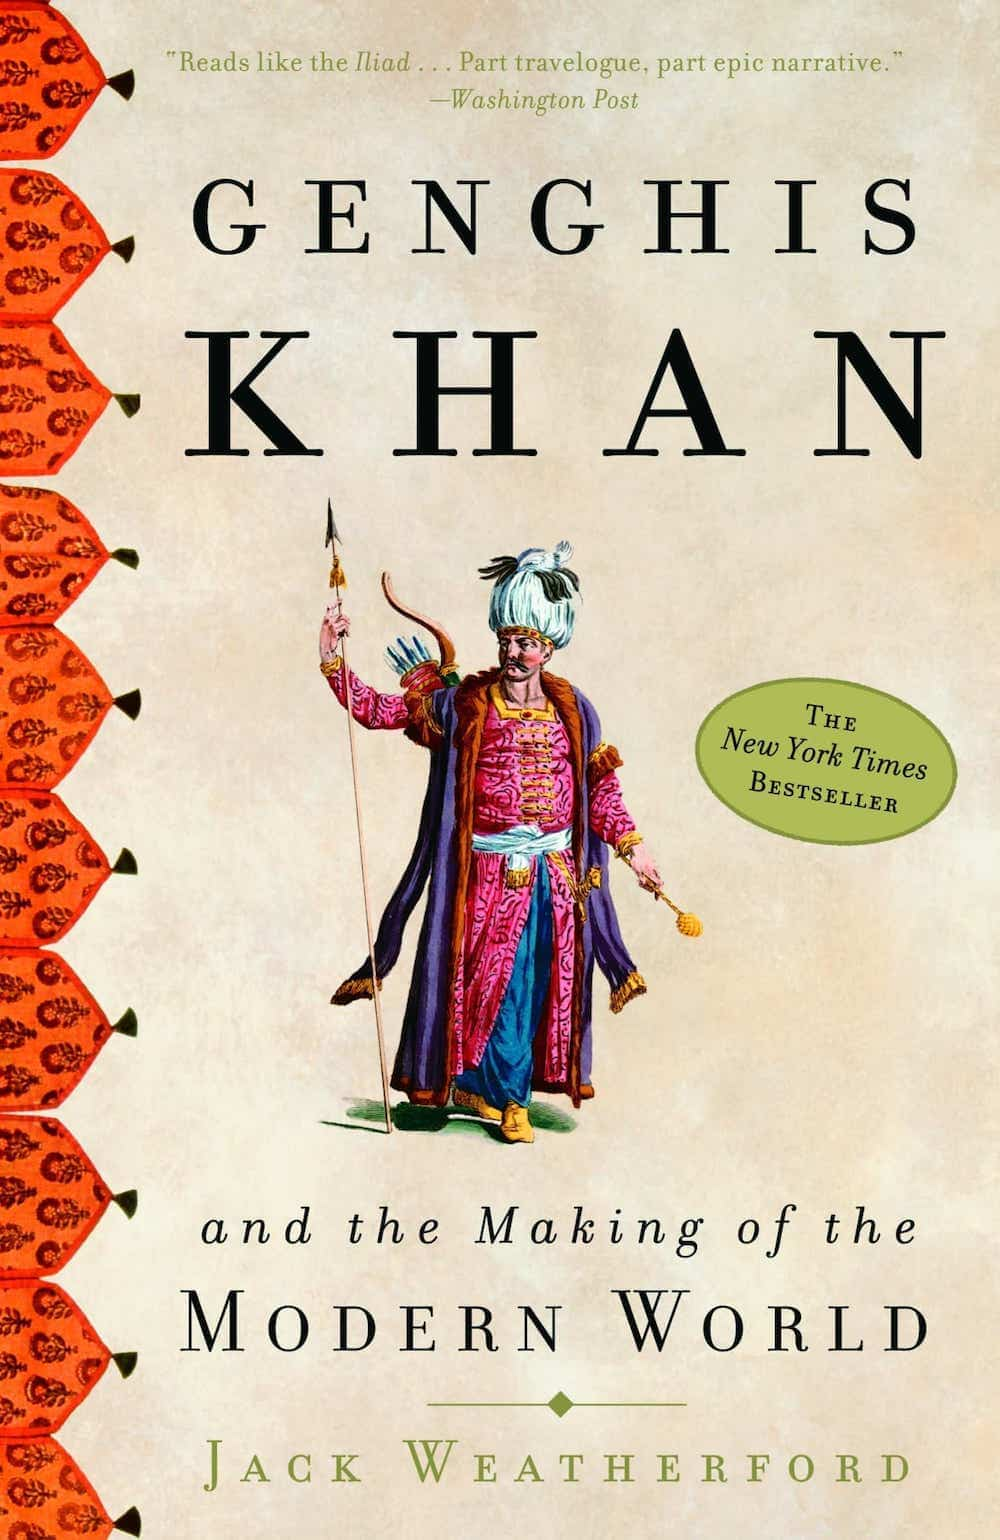 The cover of Genghis Khan and the Making of the Modern World